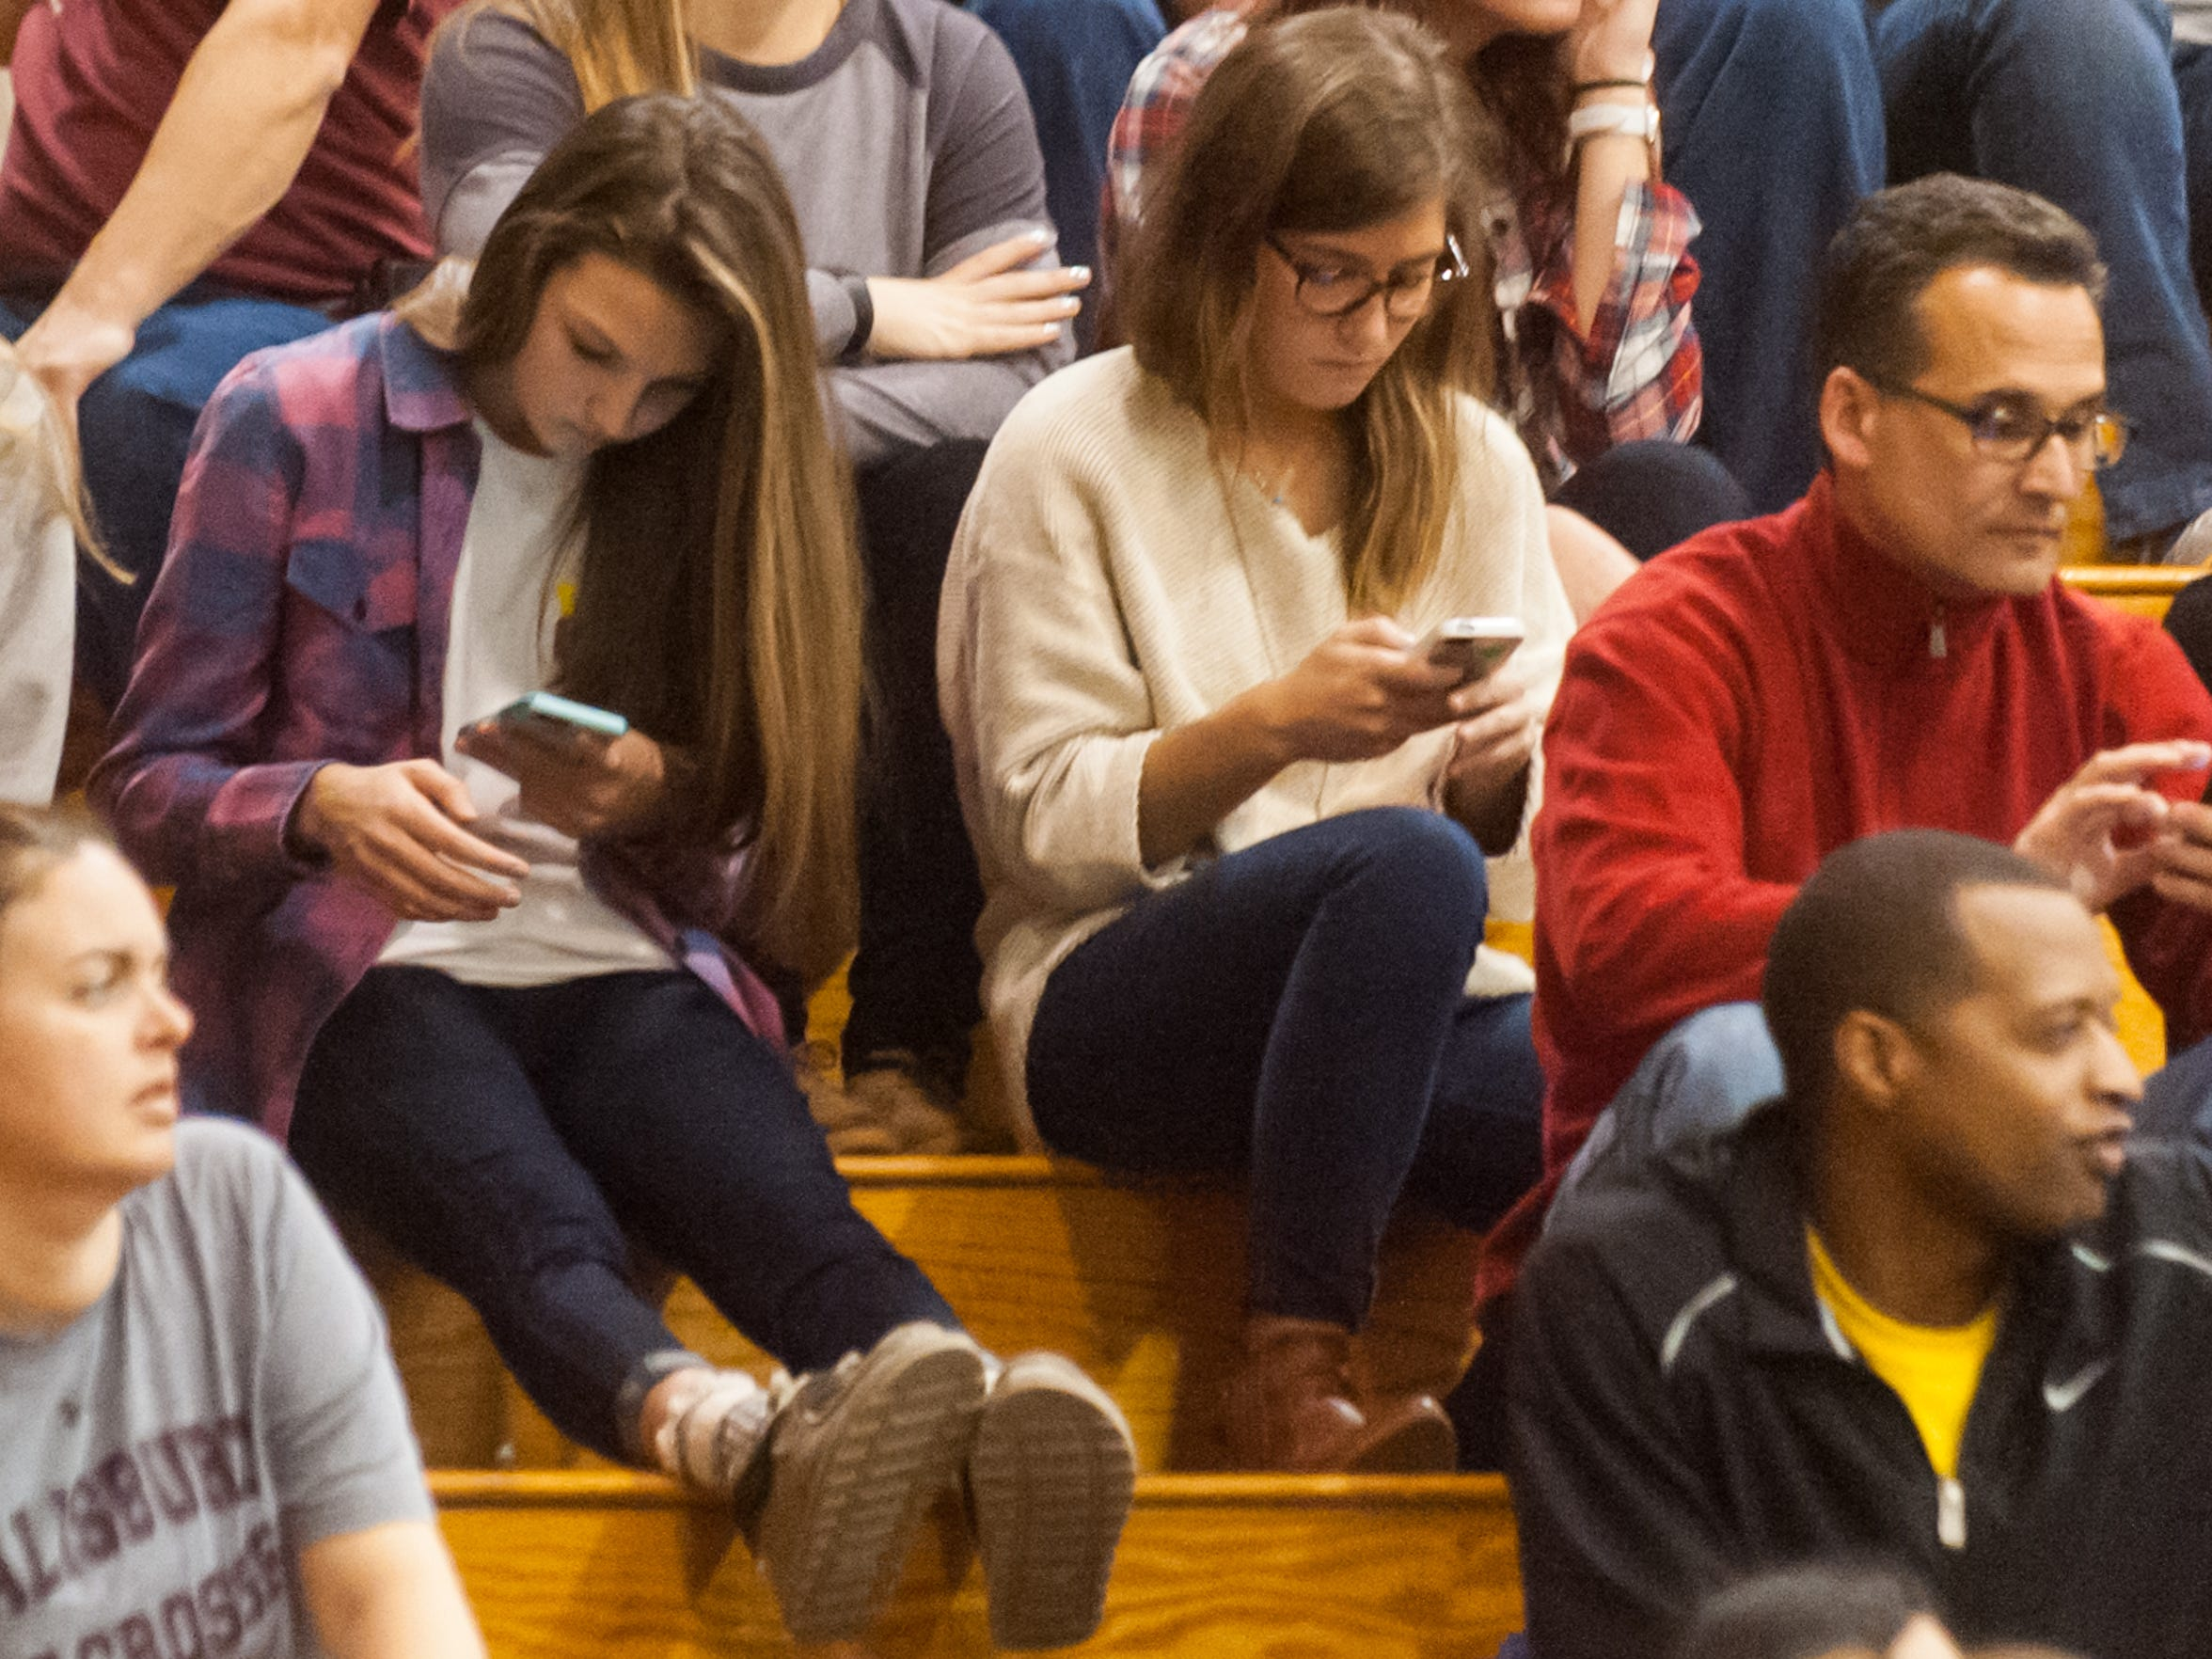 Fans check their cell phones during a Salisbury University basketball game on Saturday afternoon.